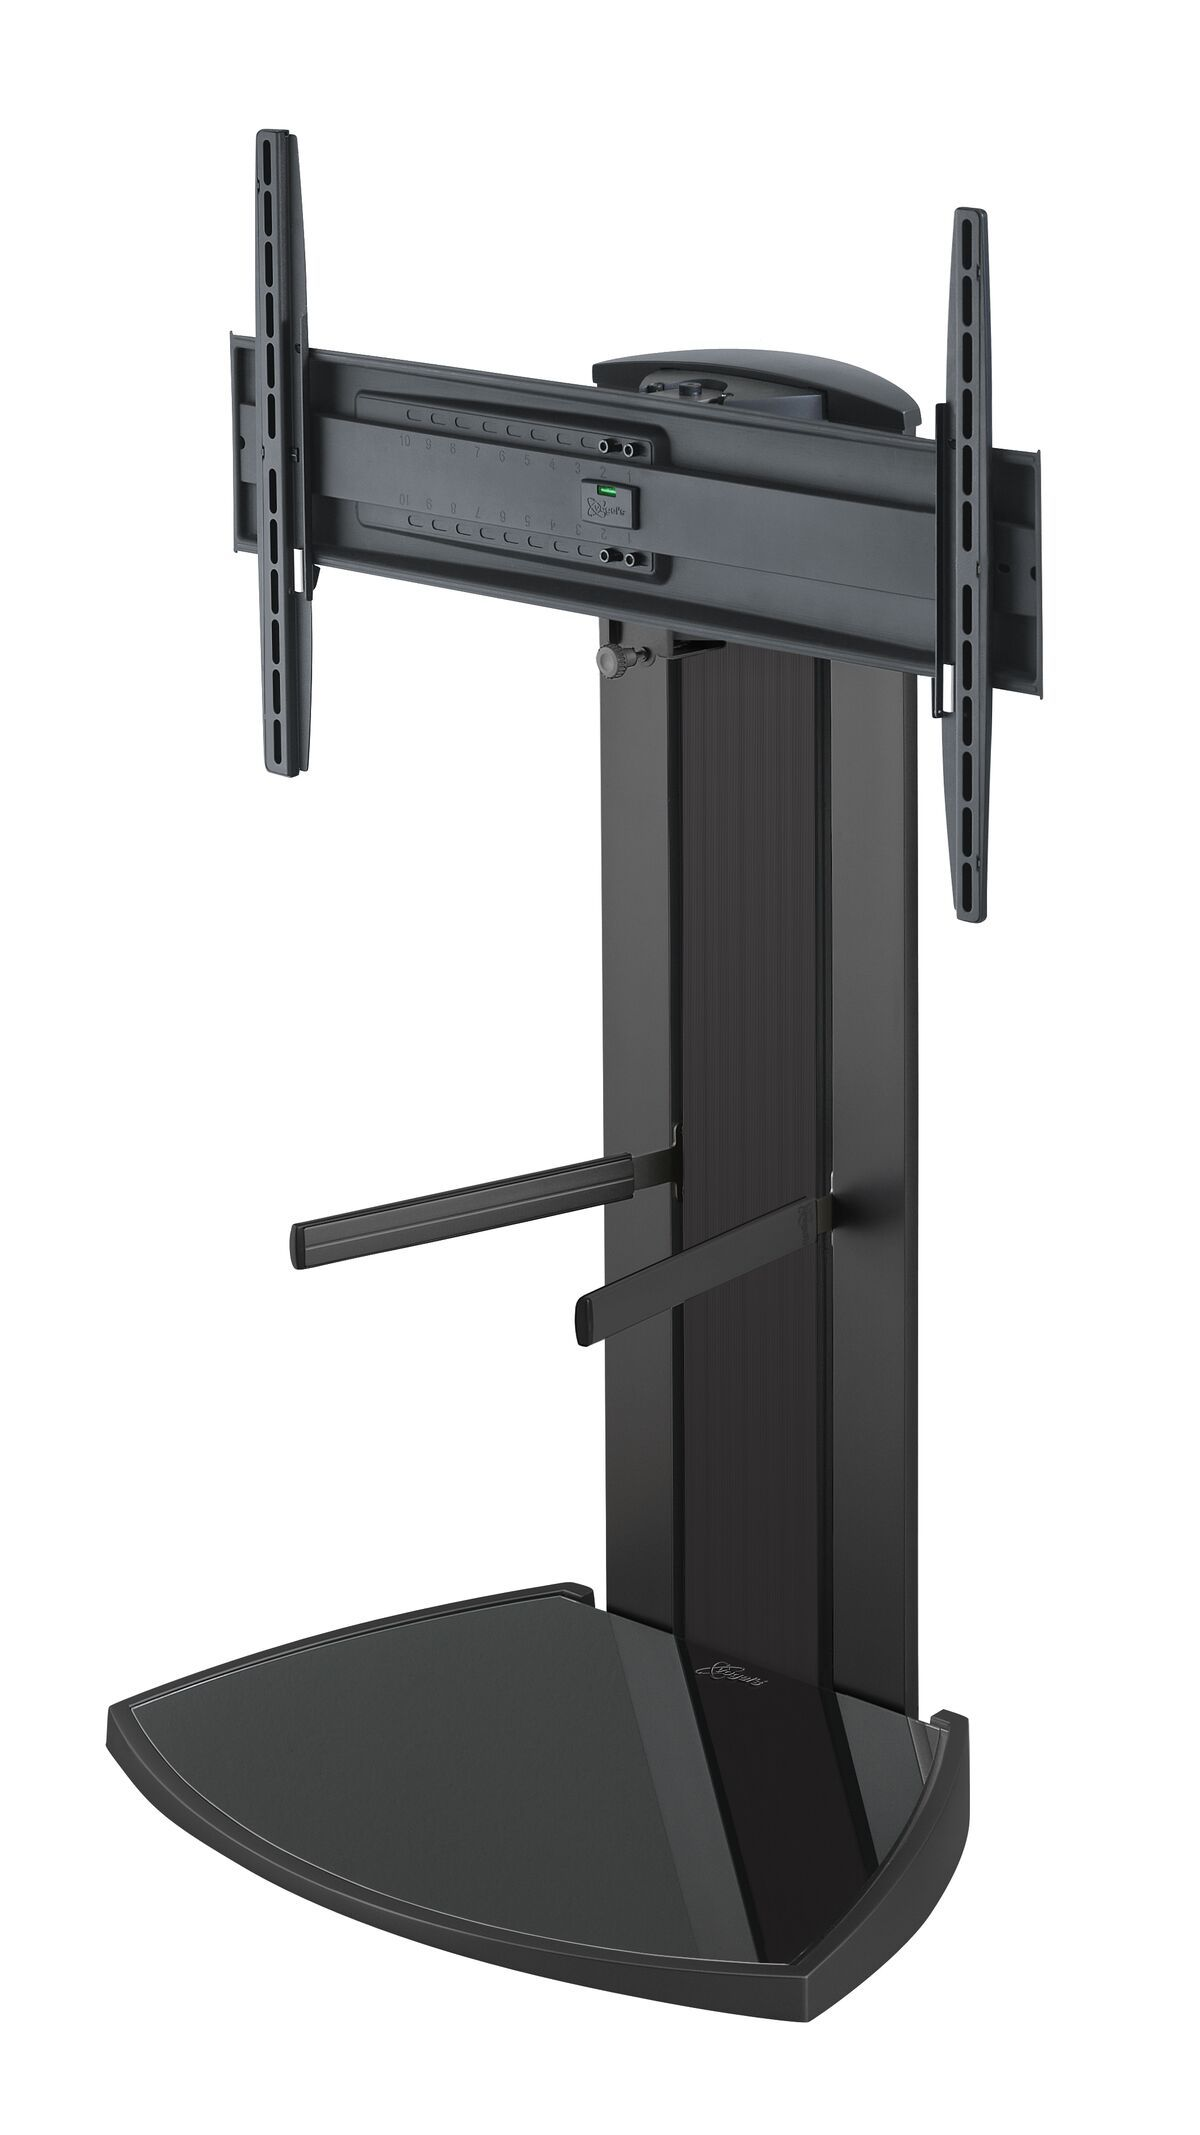 Vogel's EFF 8340 TV Floor Stand (black) - Suitable for 40 up to 65 inch TVs up to 45 kg - Product